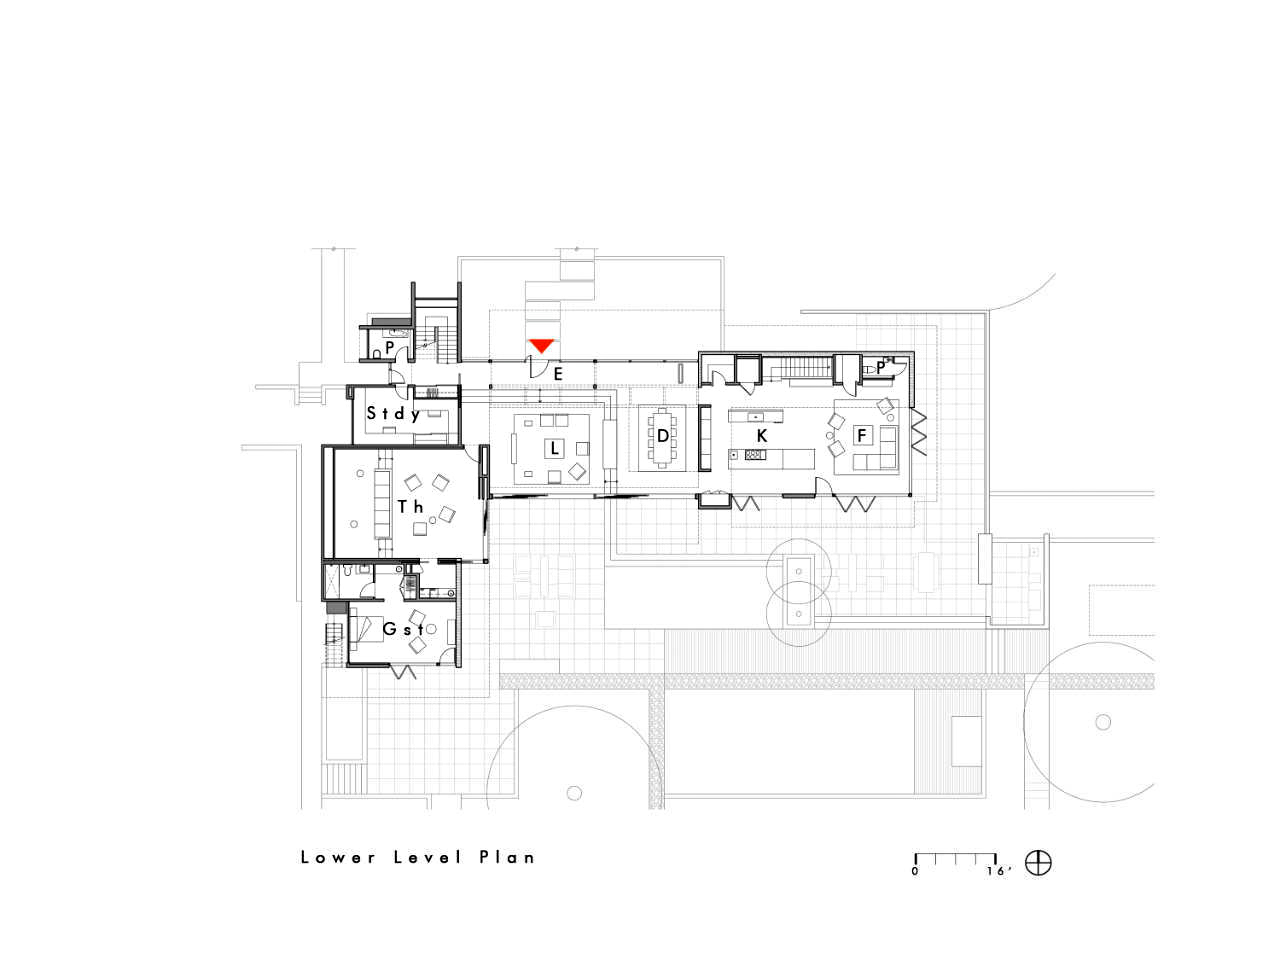 Lower Level Floor Plan - Modern Luxury OZ Residence - 92 Sutherland Drive, Atherton, CA, USA